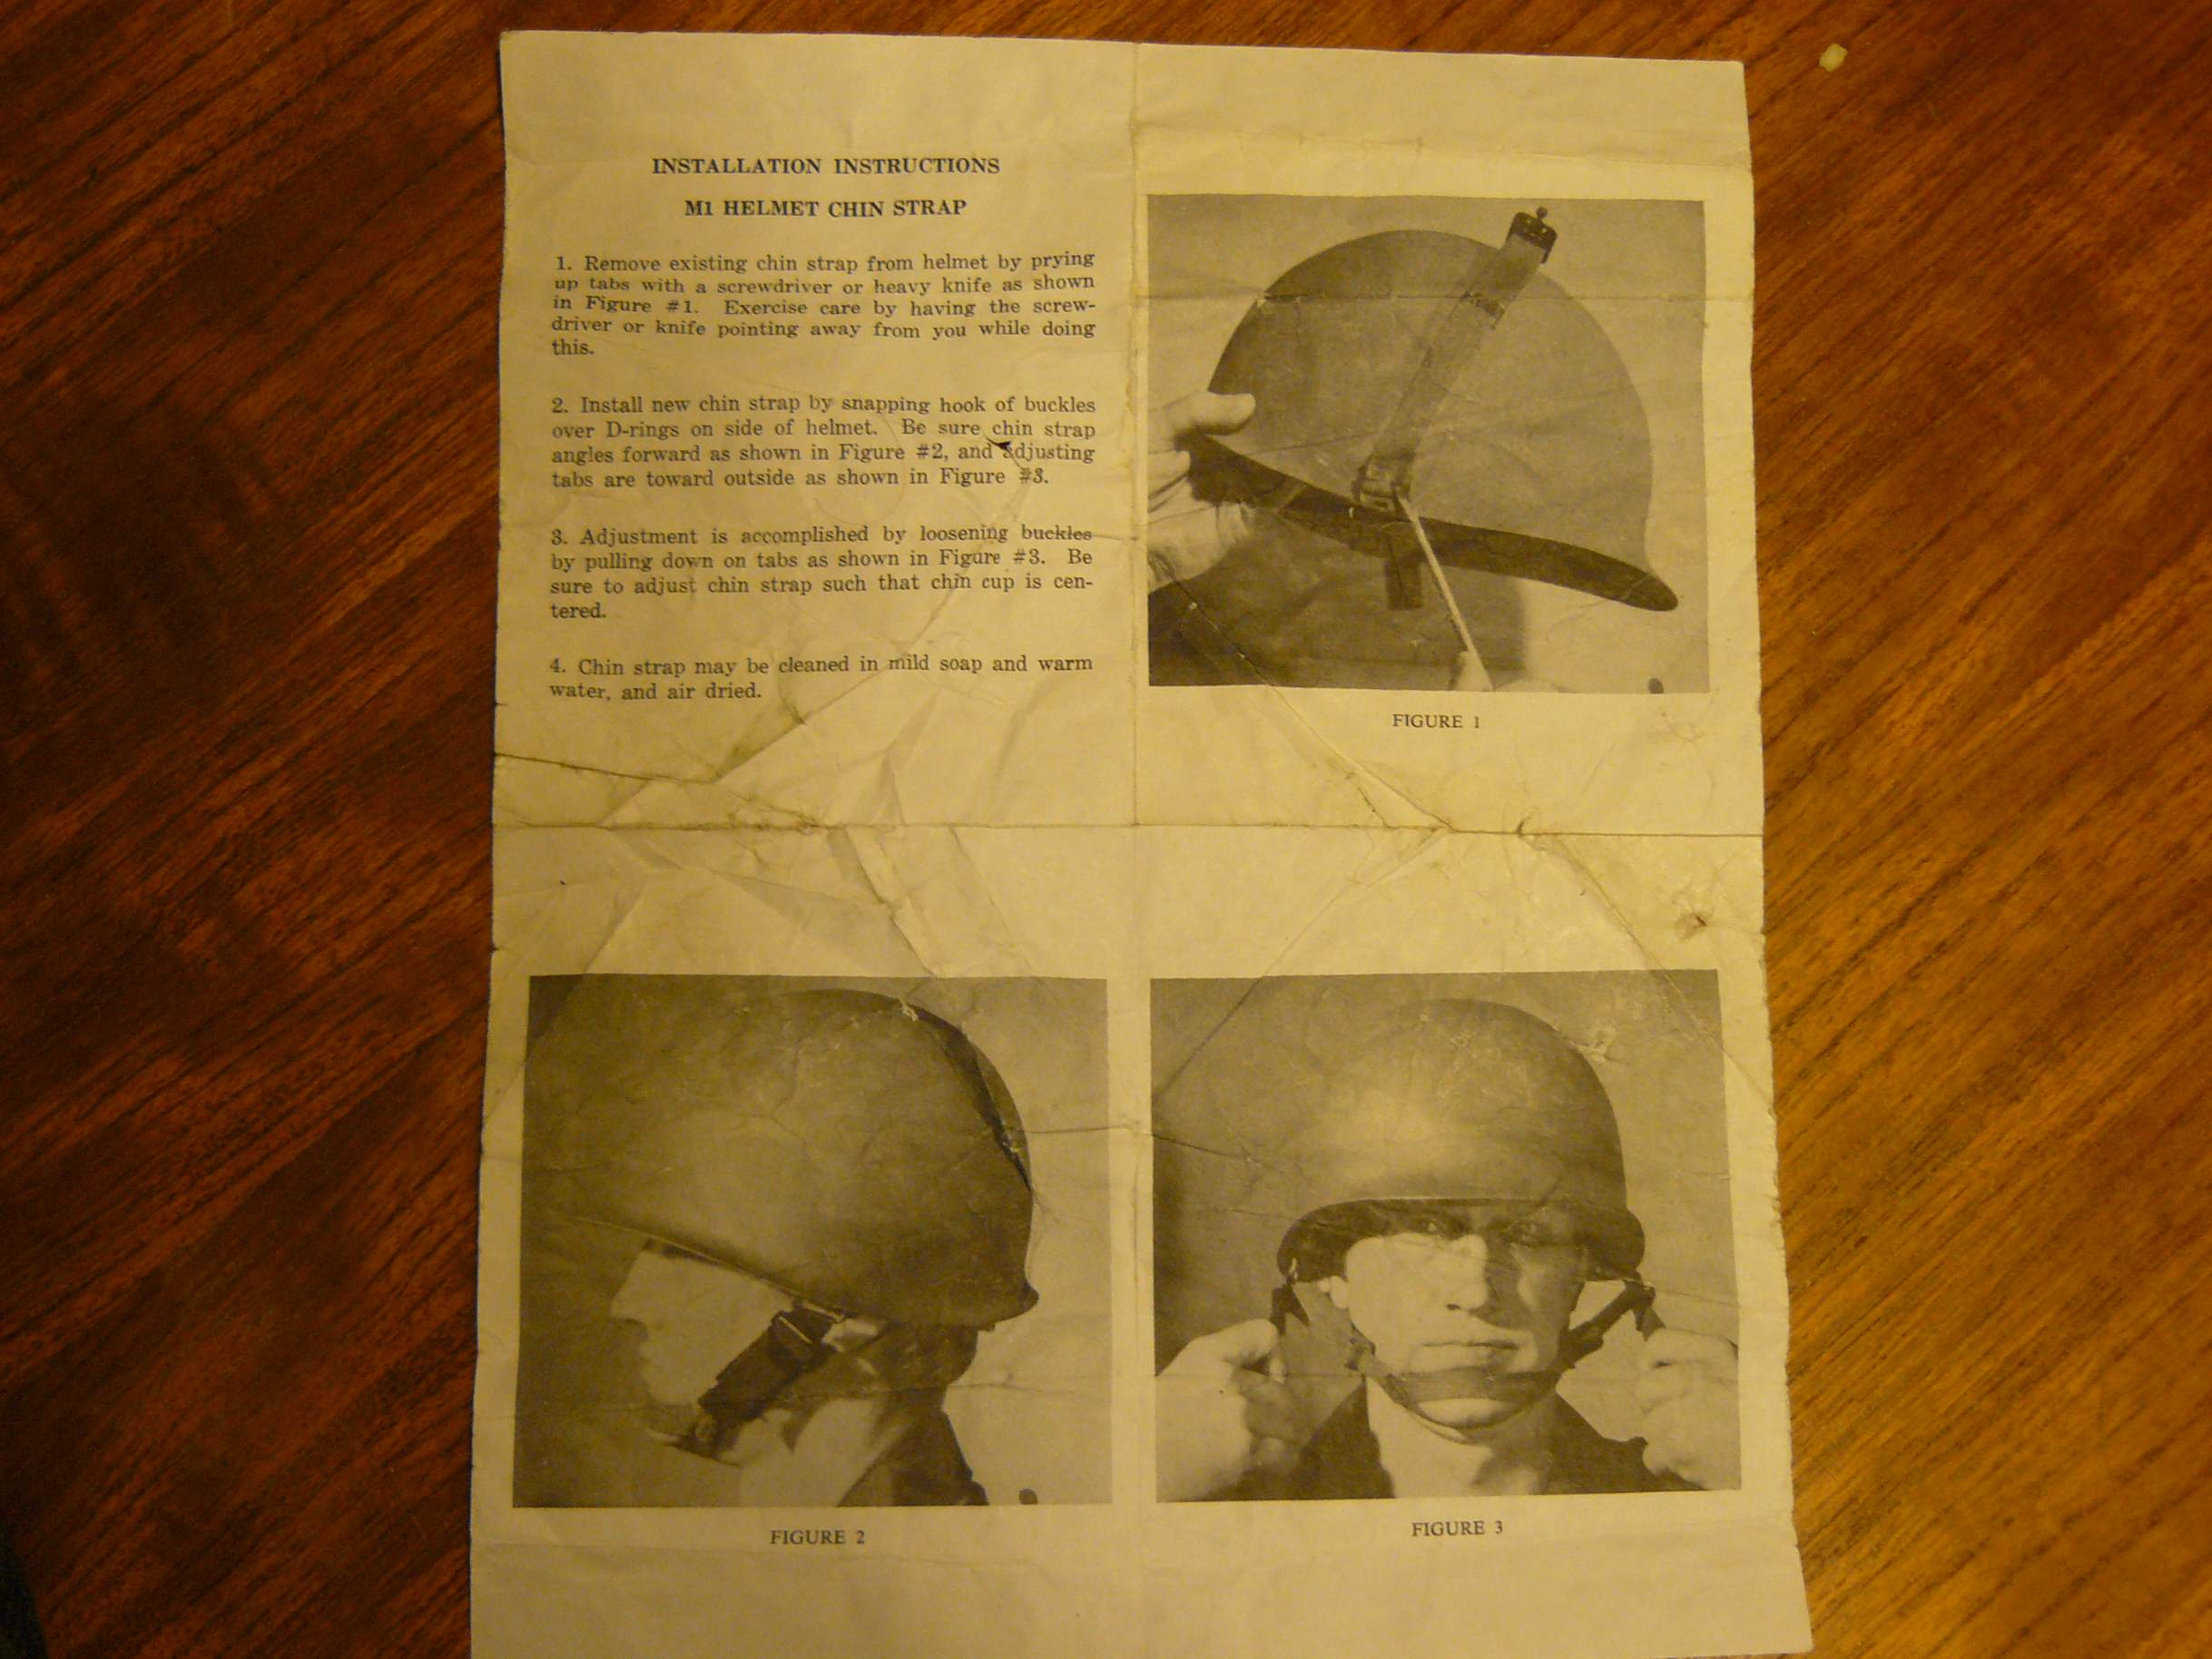 Instructions For Replacing Chinstraps On Post War M1 Helmets